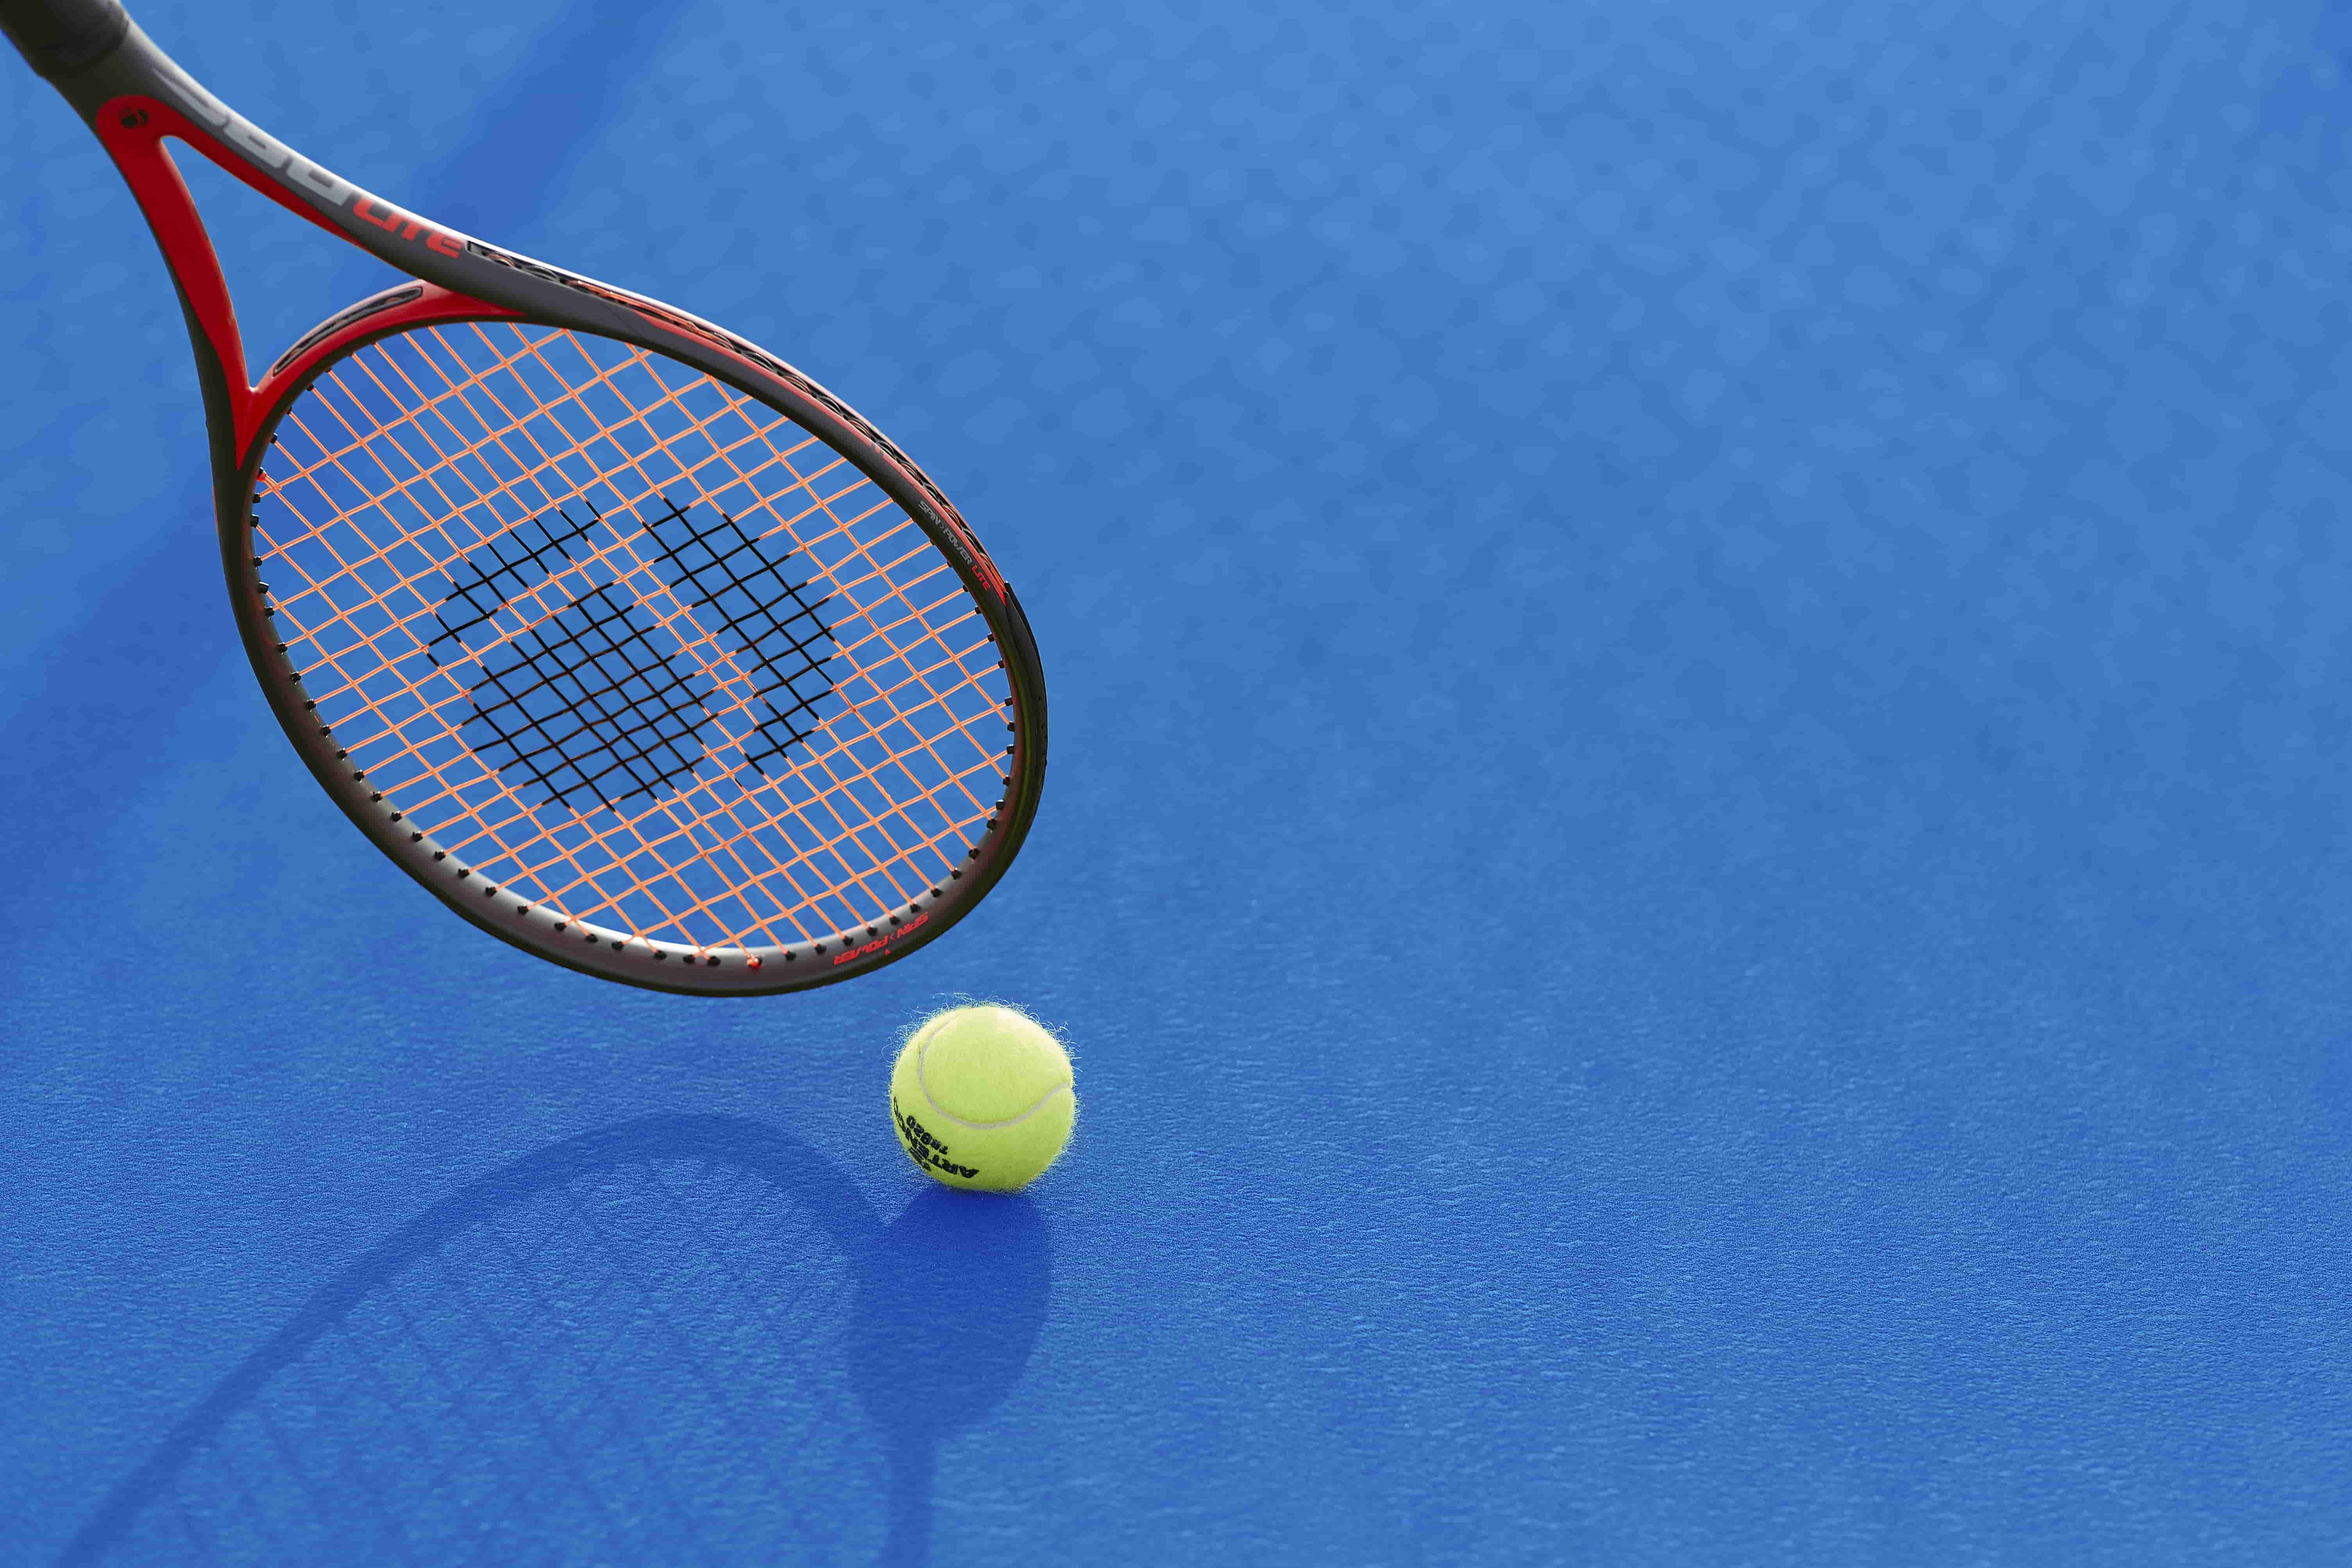 Tennis At Home: Tennis Exercises With Videos For Kids & Families